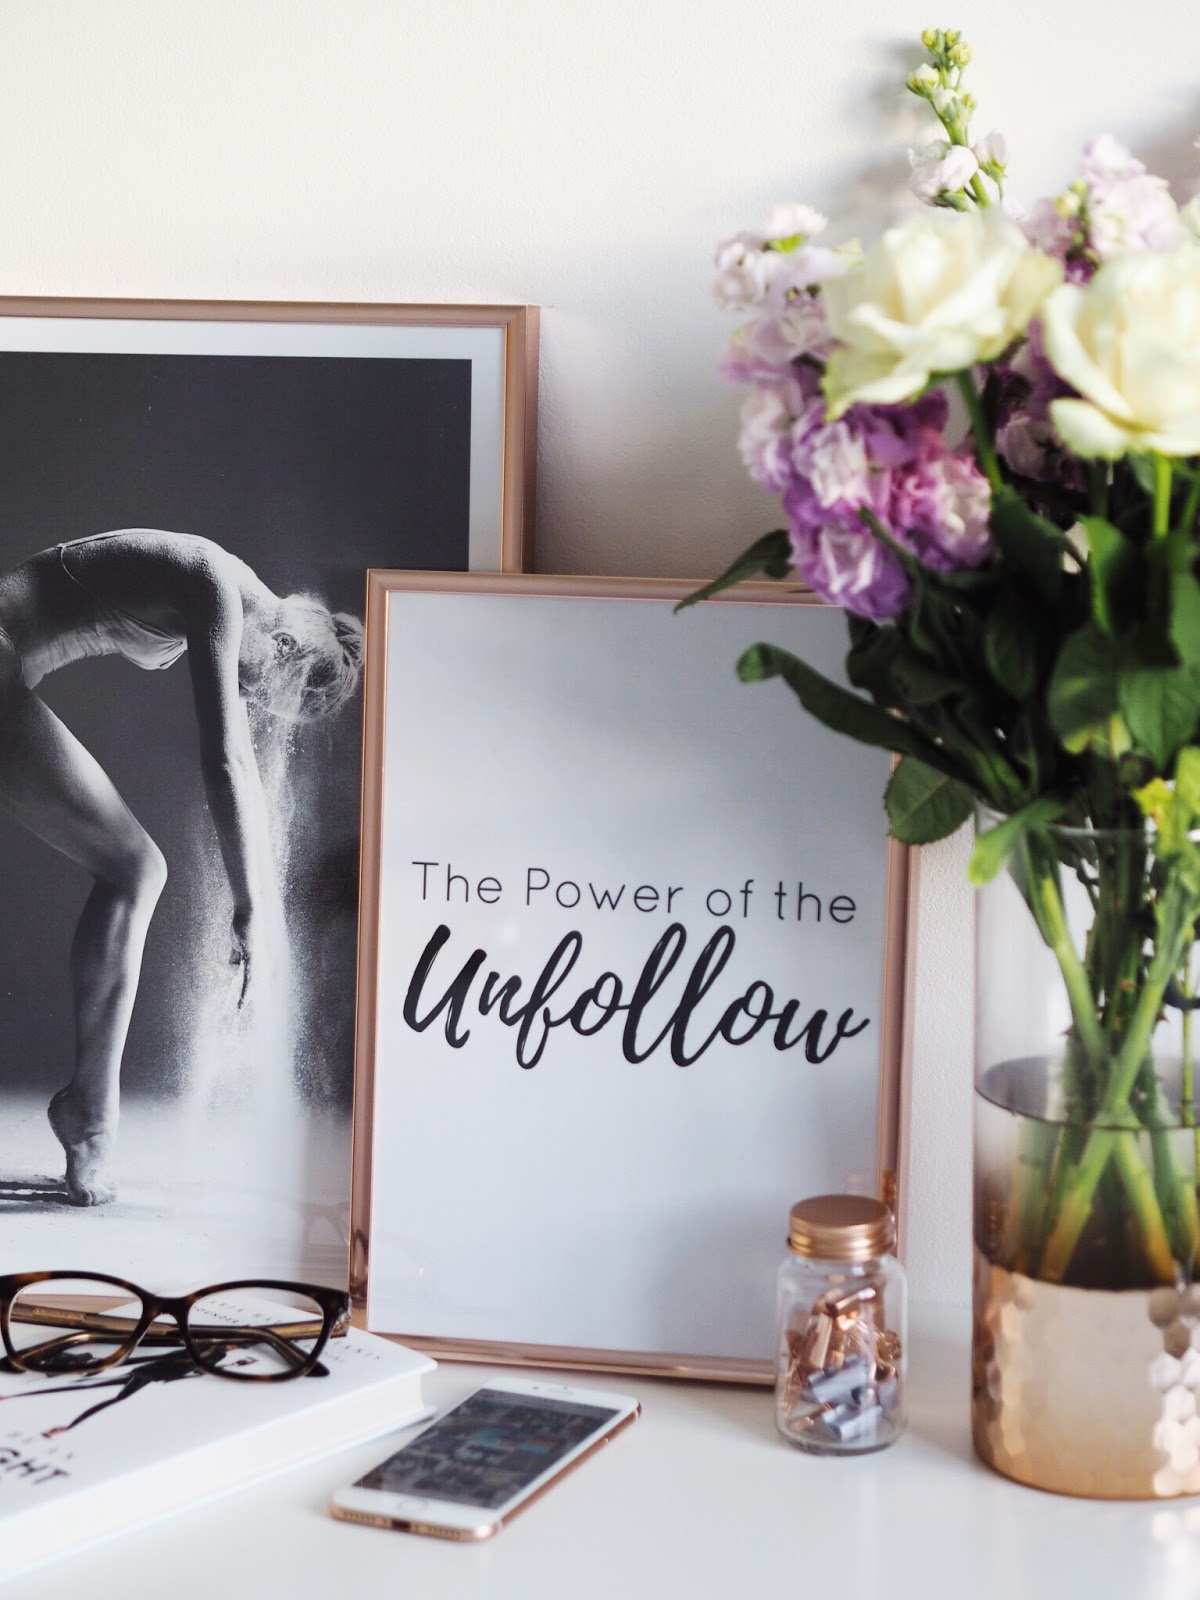 The Power of Unfollow poster in copper frame, fresh white roses and lilac stocks, glasses, ballet poster and iphone 8 with instagram open flaylay